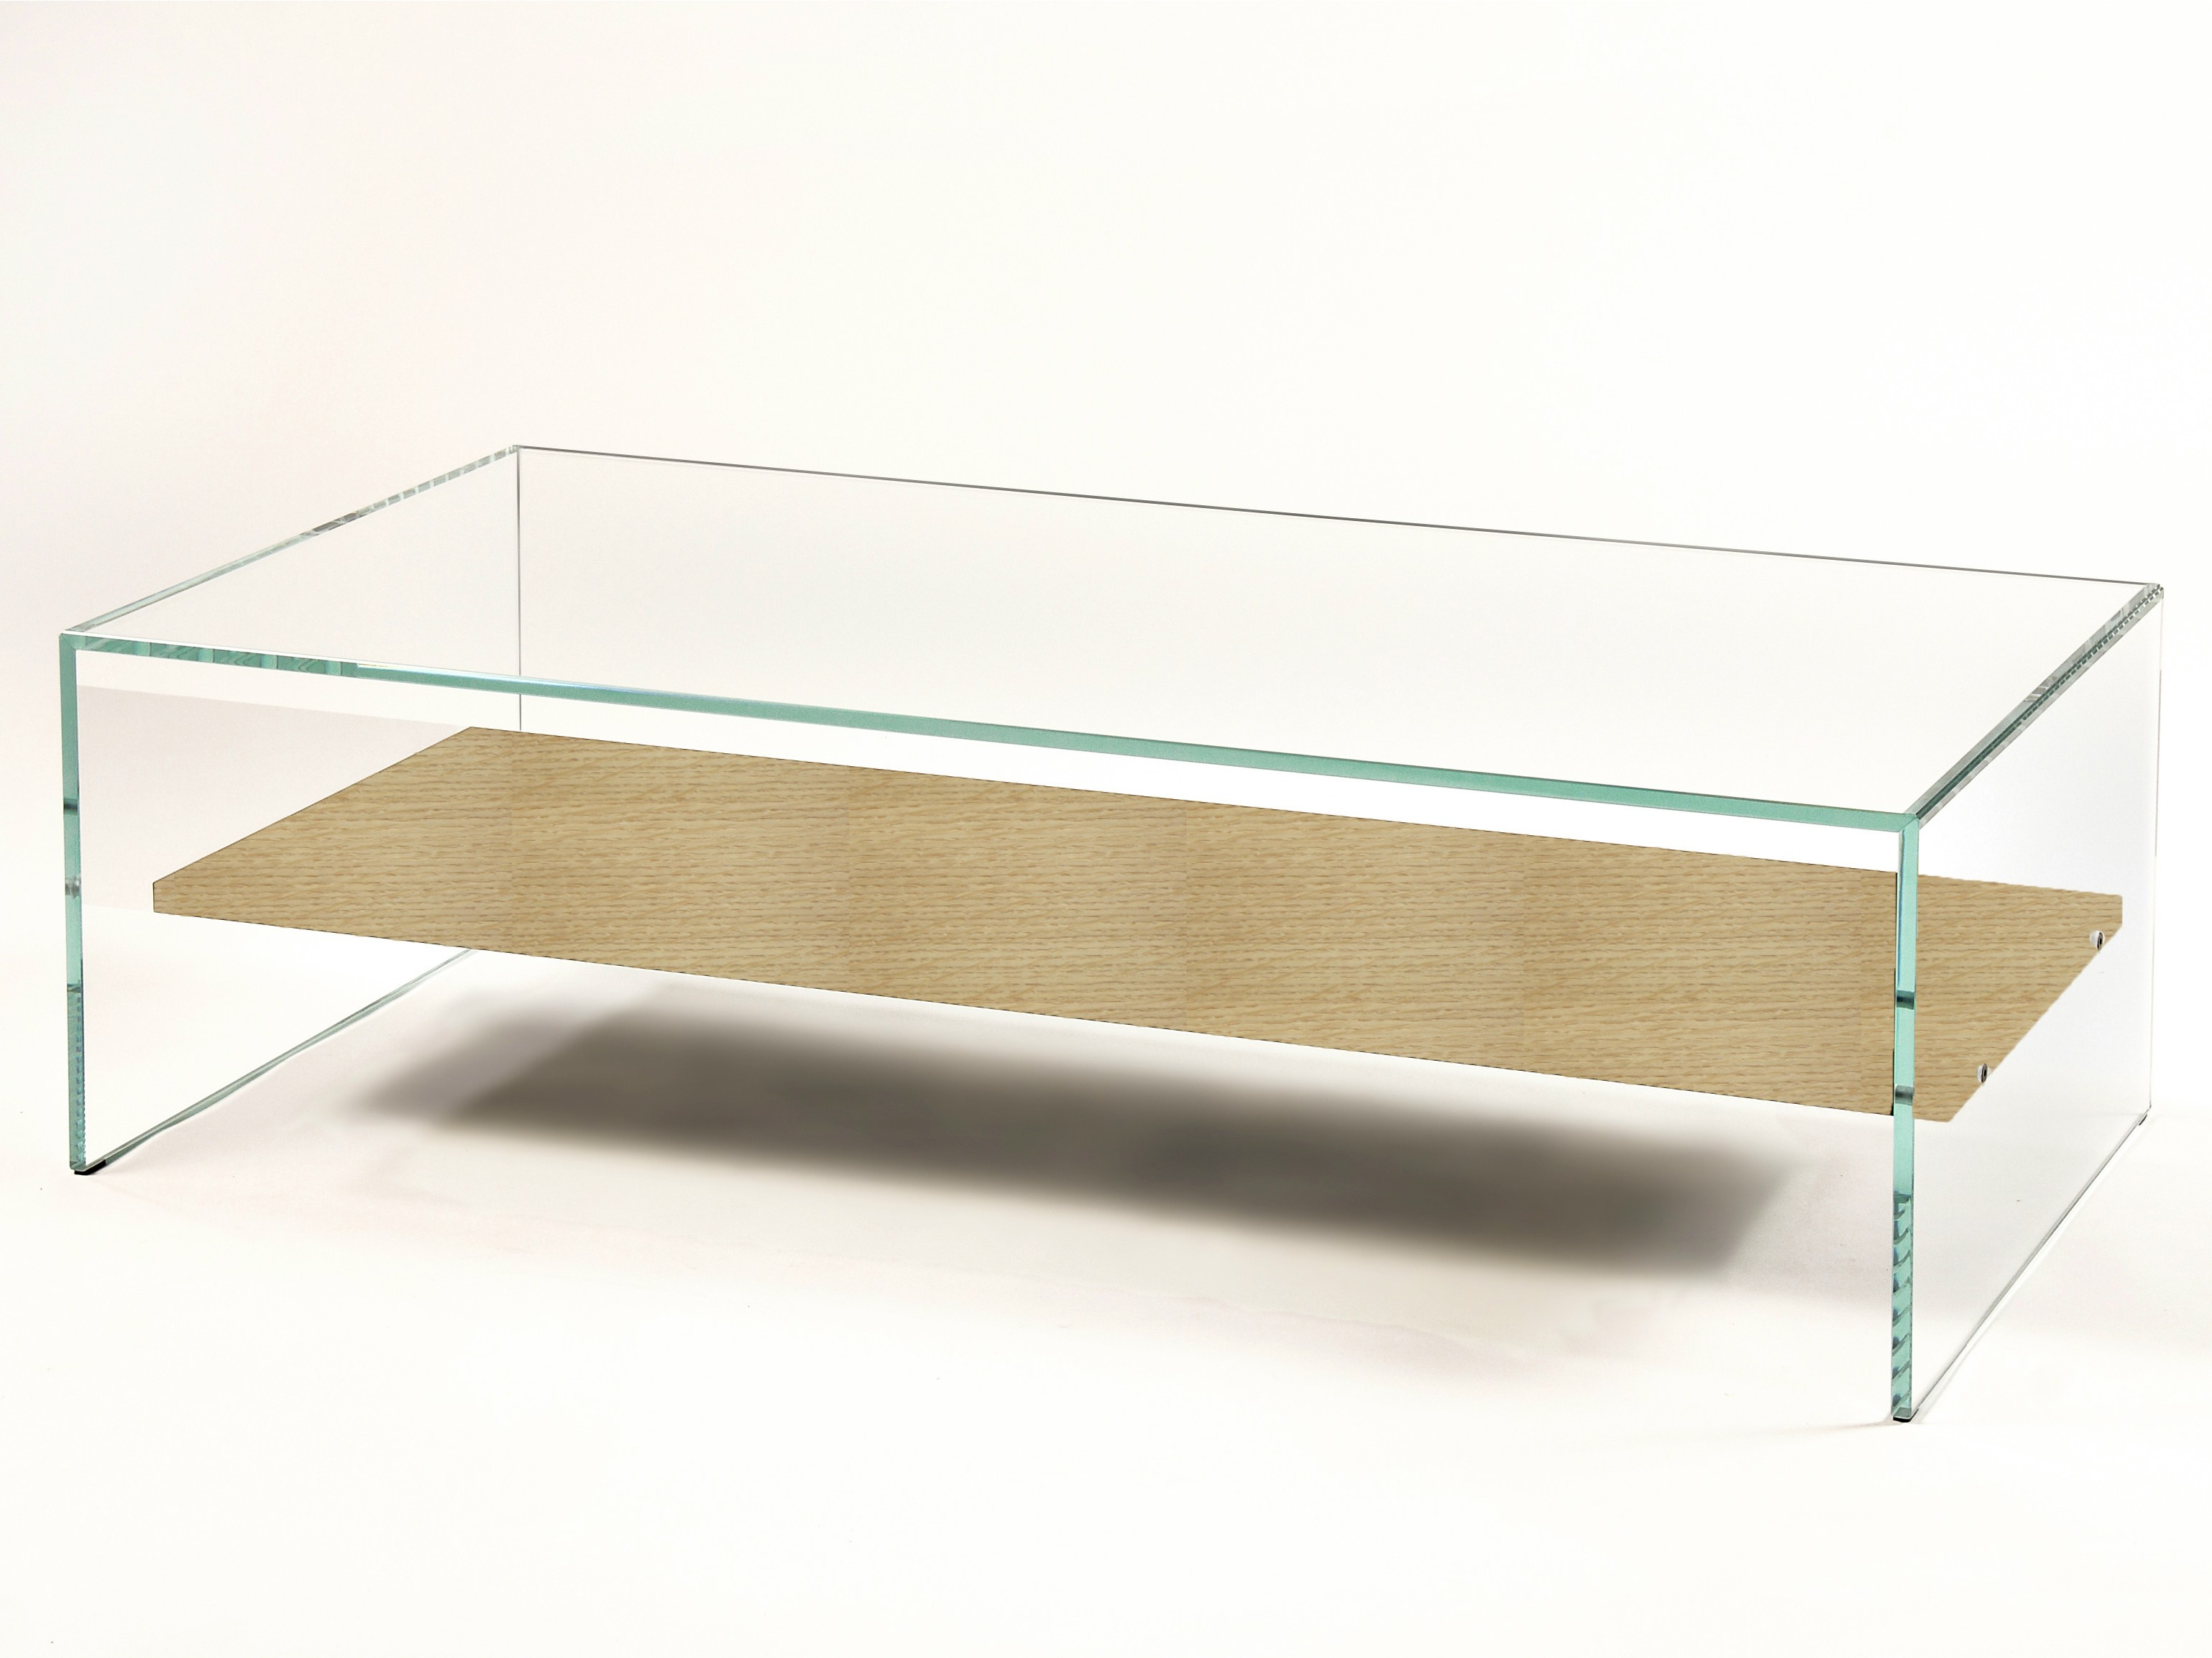 Glass Coffee Table With Shelf The Shelf Underneath Is For Magazines Shape Ensures That This Piece Will Make A Statement (Image 9 of 10)